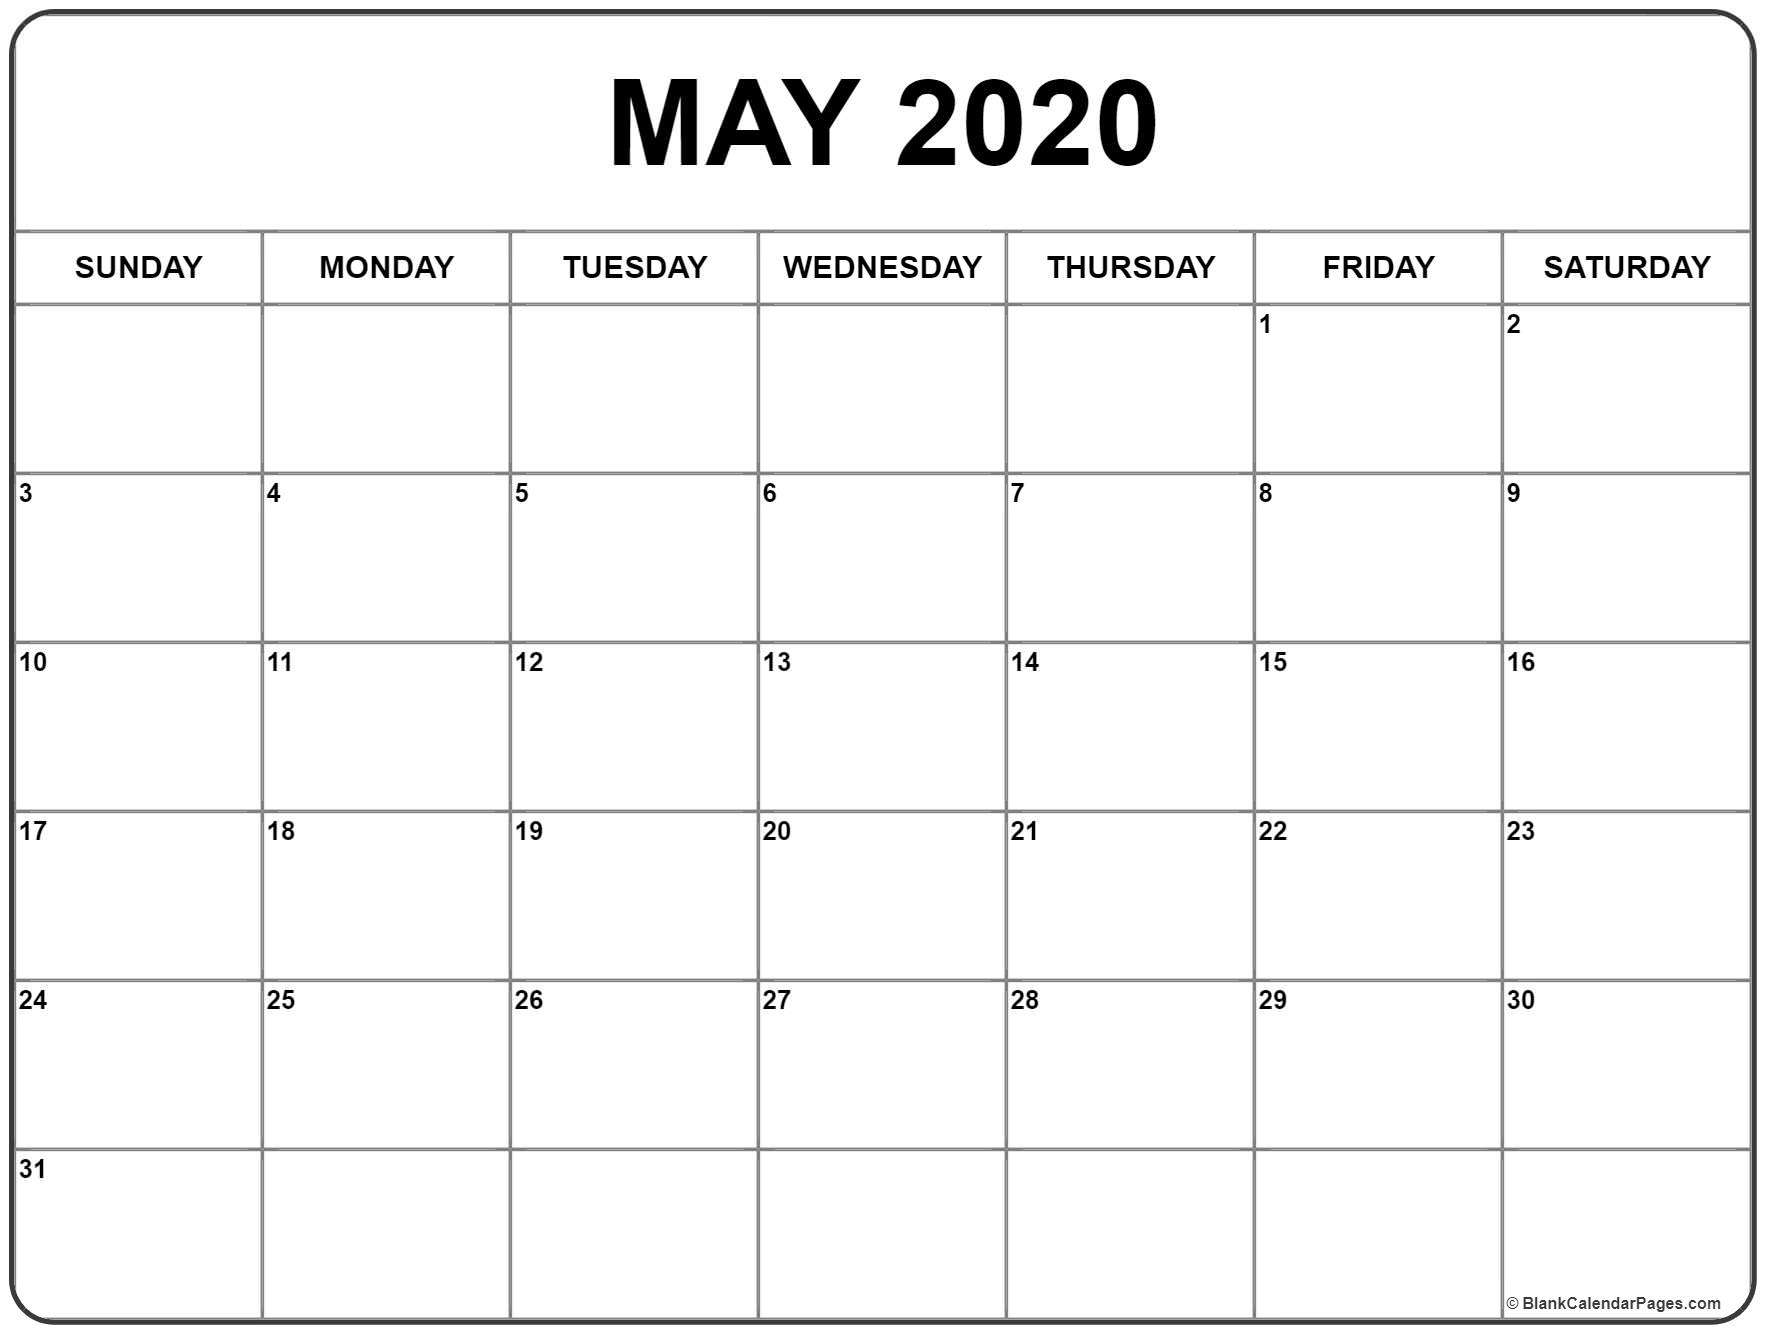 May 2020 Calendar 56 Templates Of 2020 Printable Calendars | Isacl with regard to 2020 Monday - Friday Calendar Printable